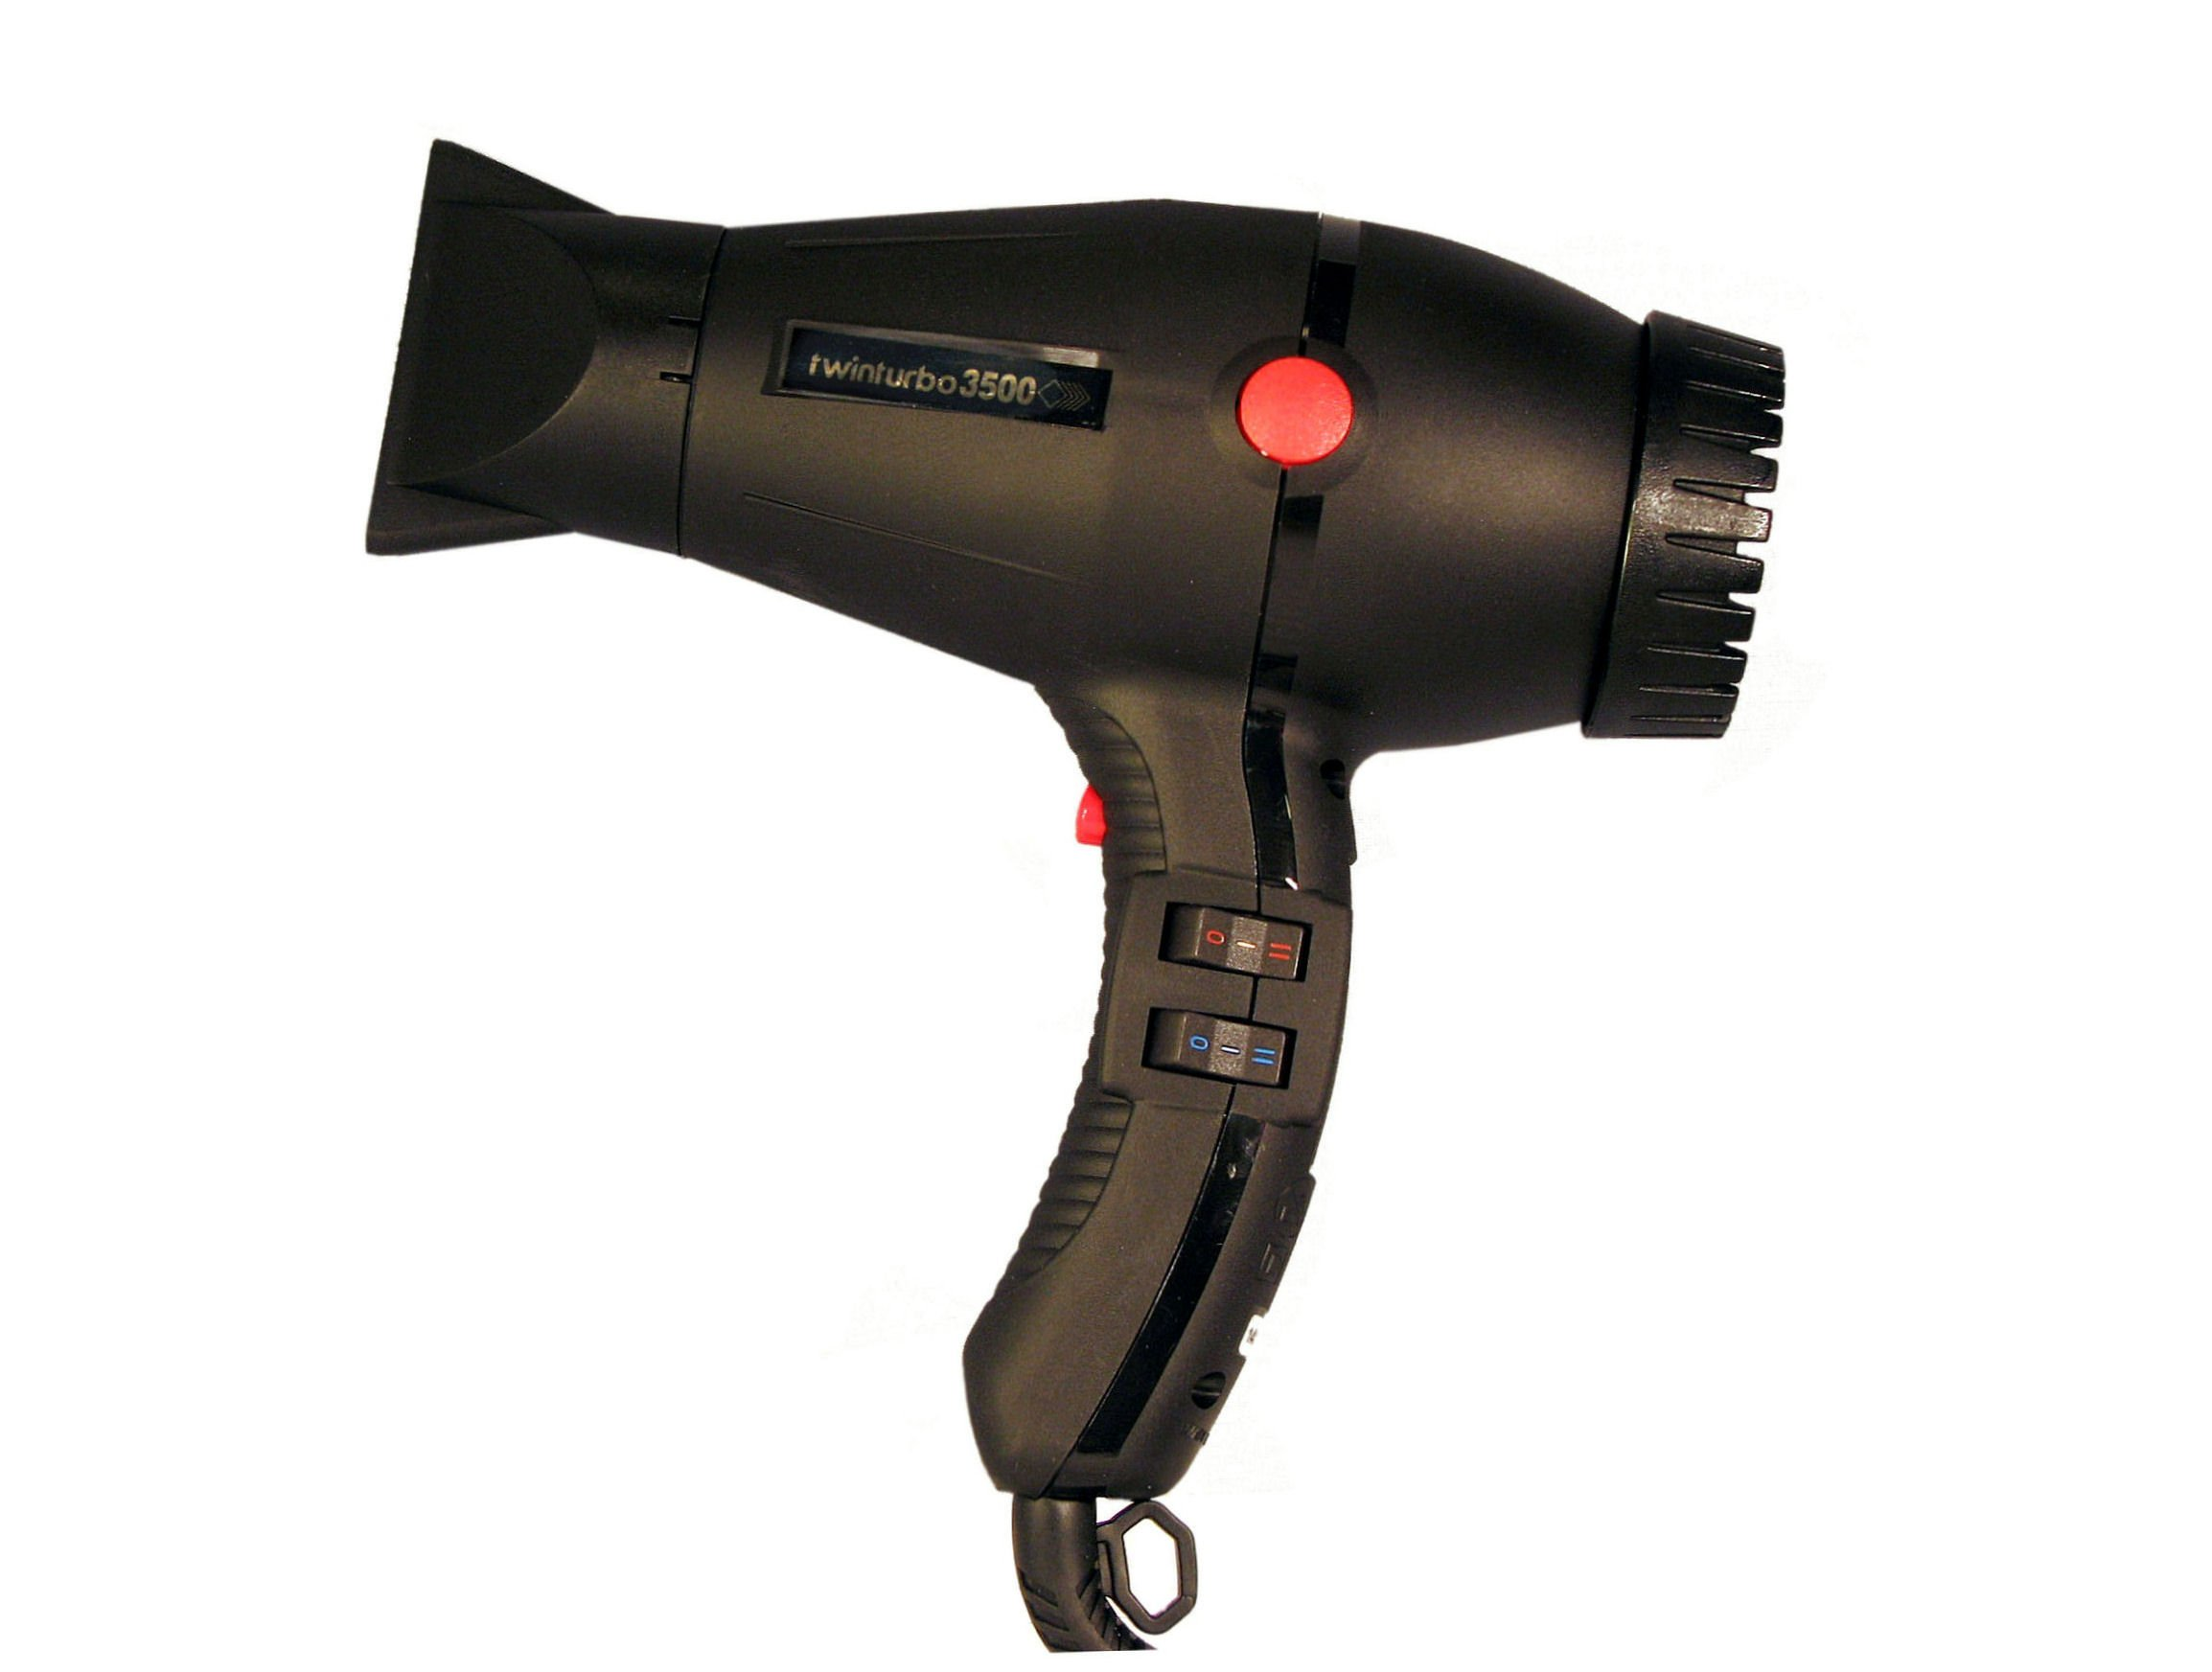 Extracompact Twinturbo Compact Professional Dryer